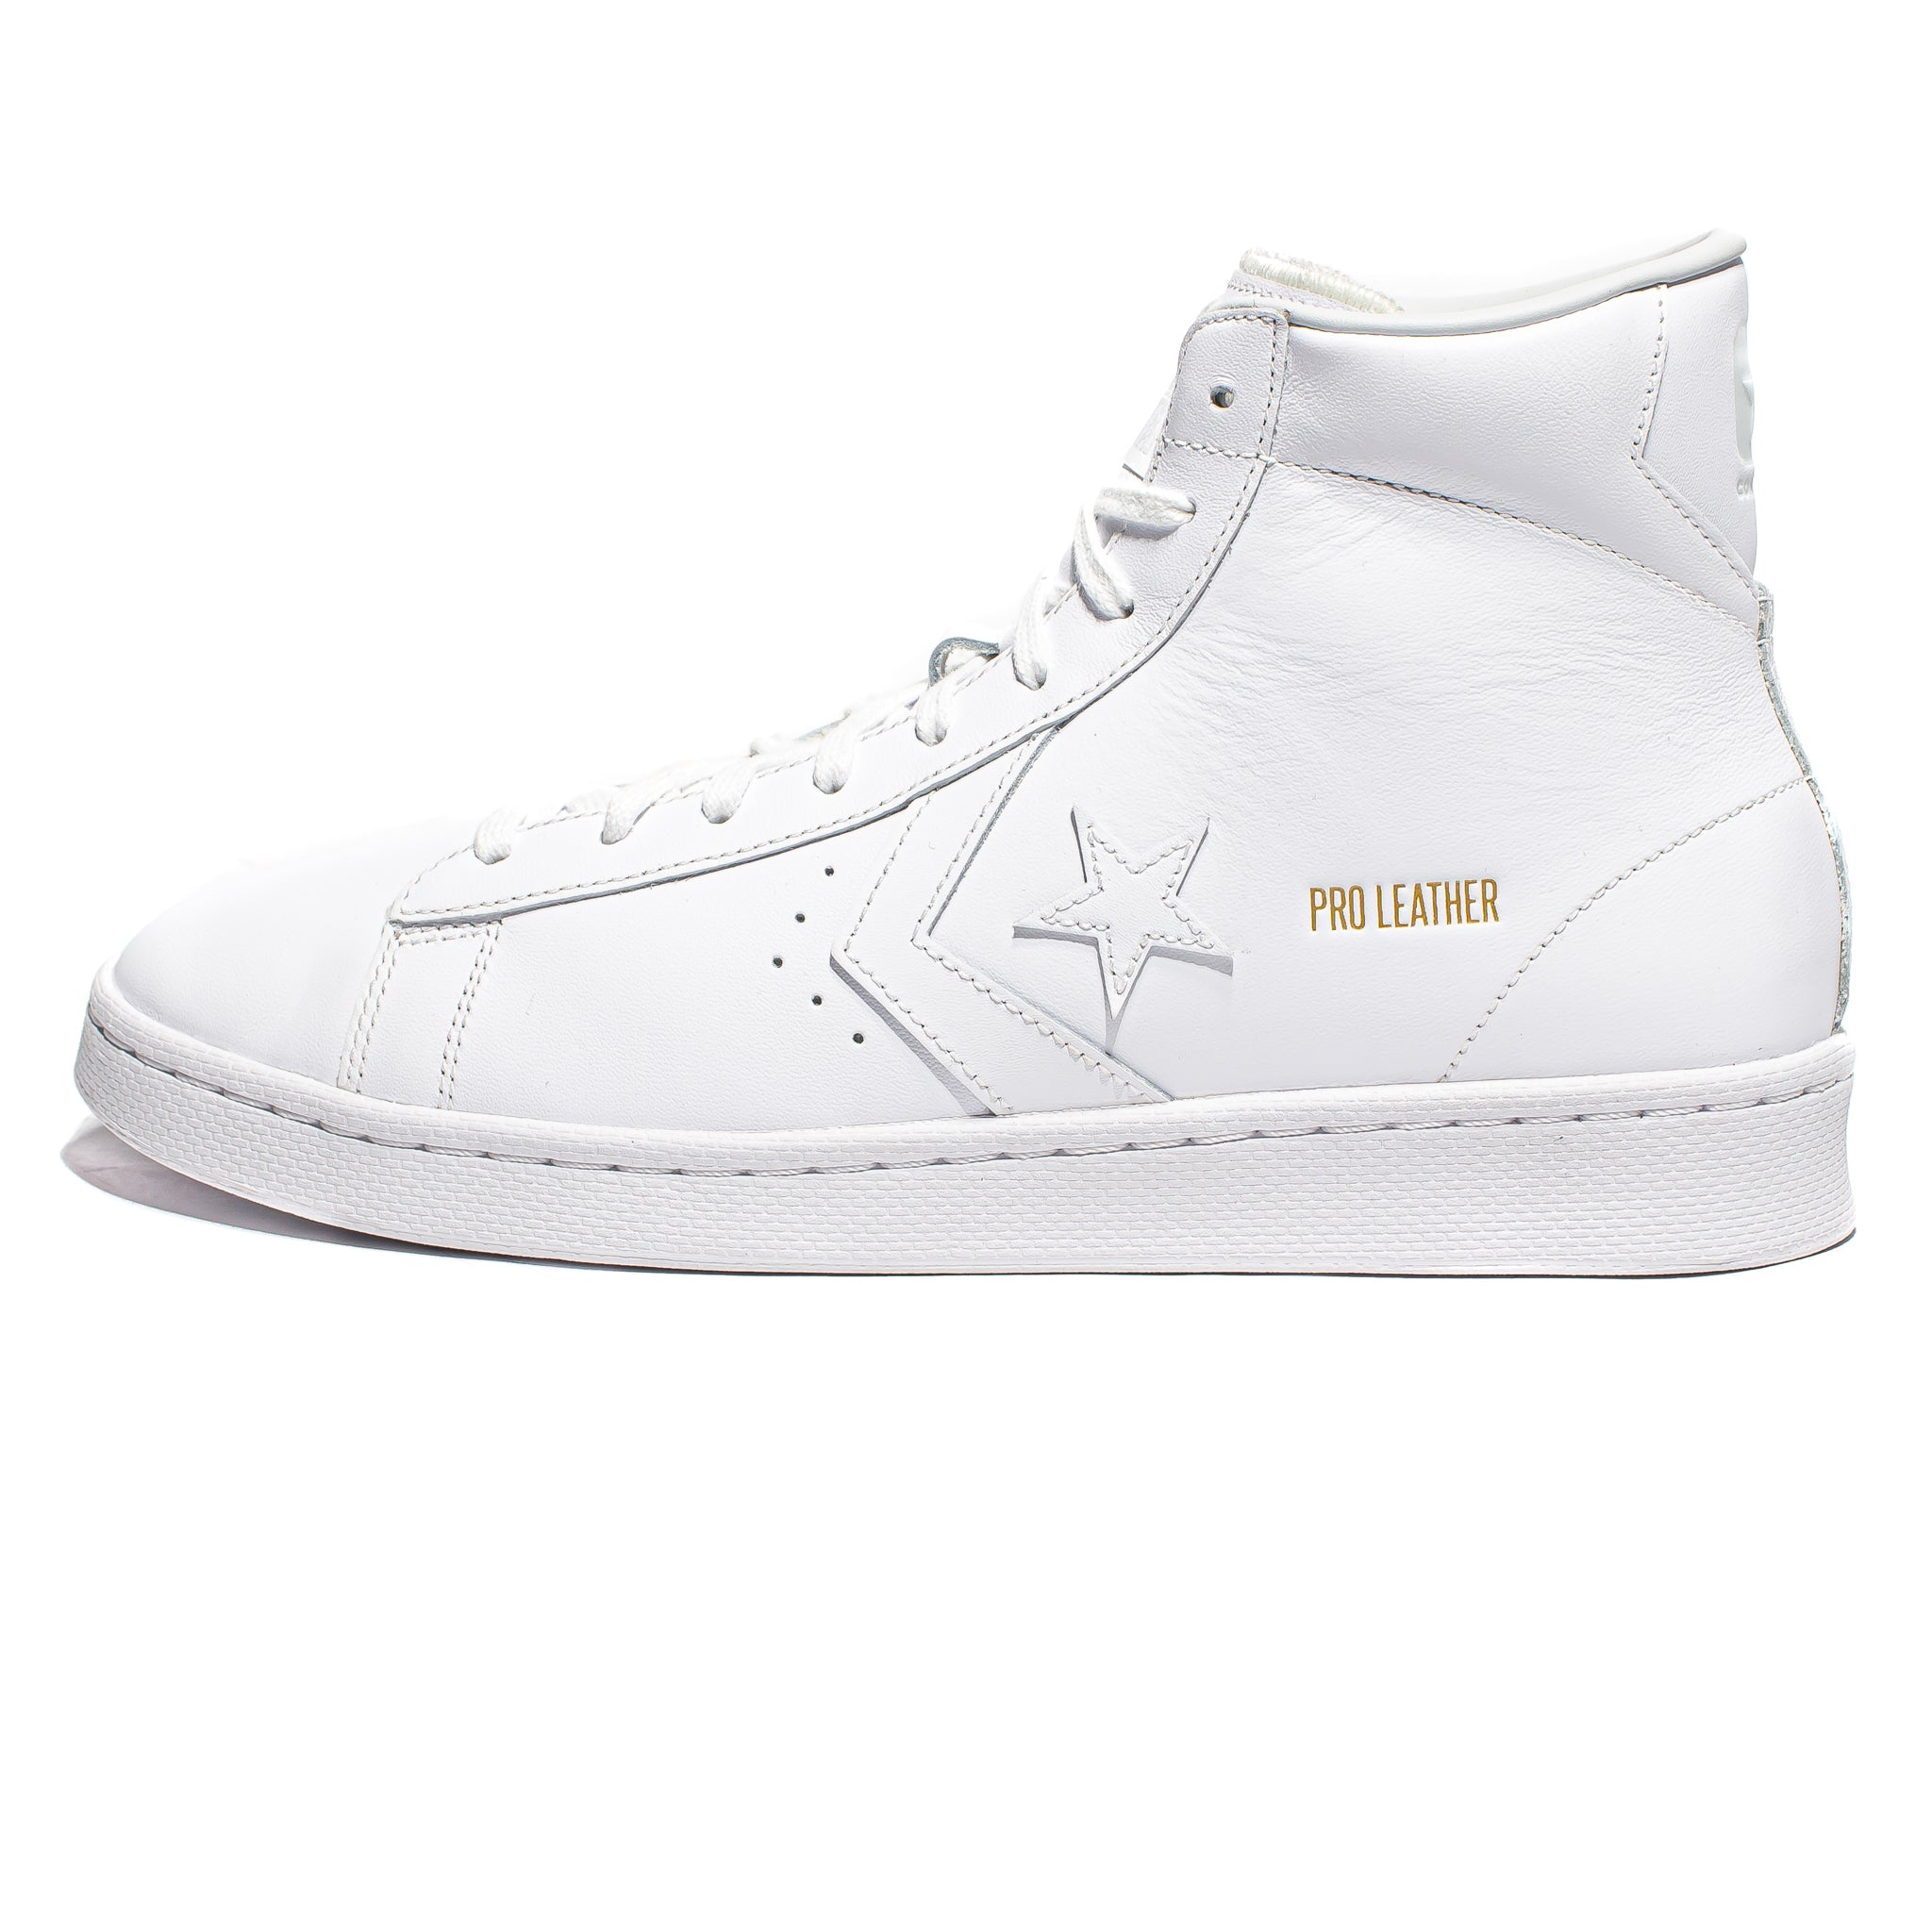 Converse Pro Leather Mid - White/White